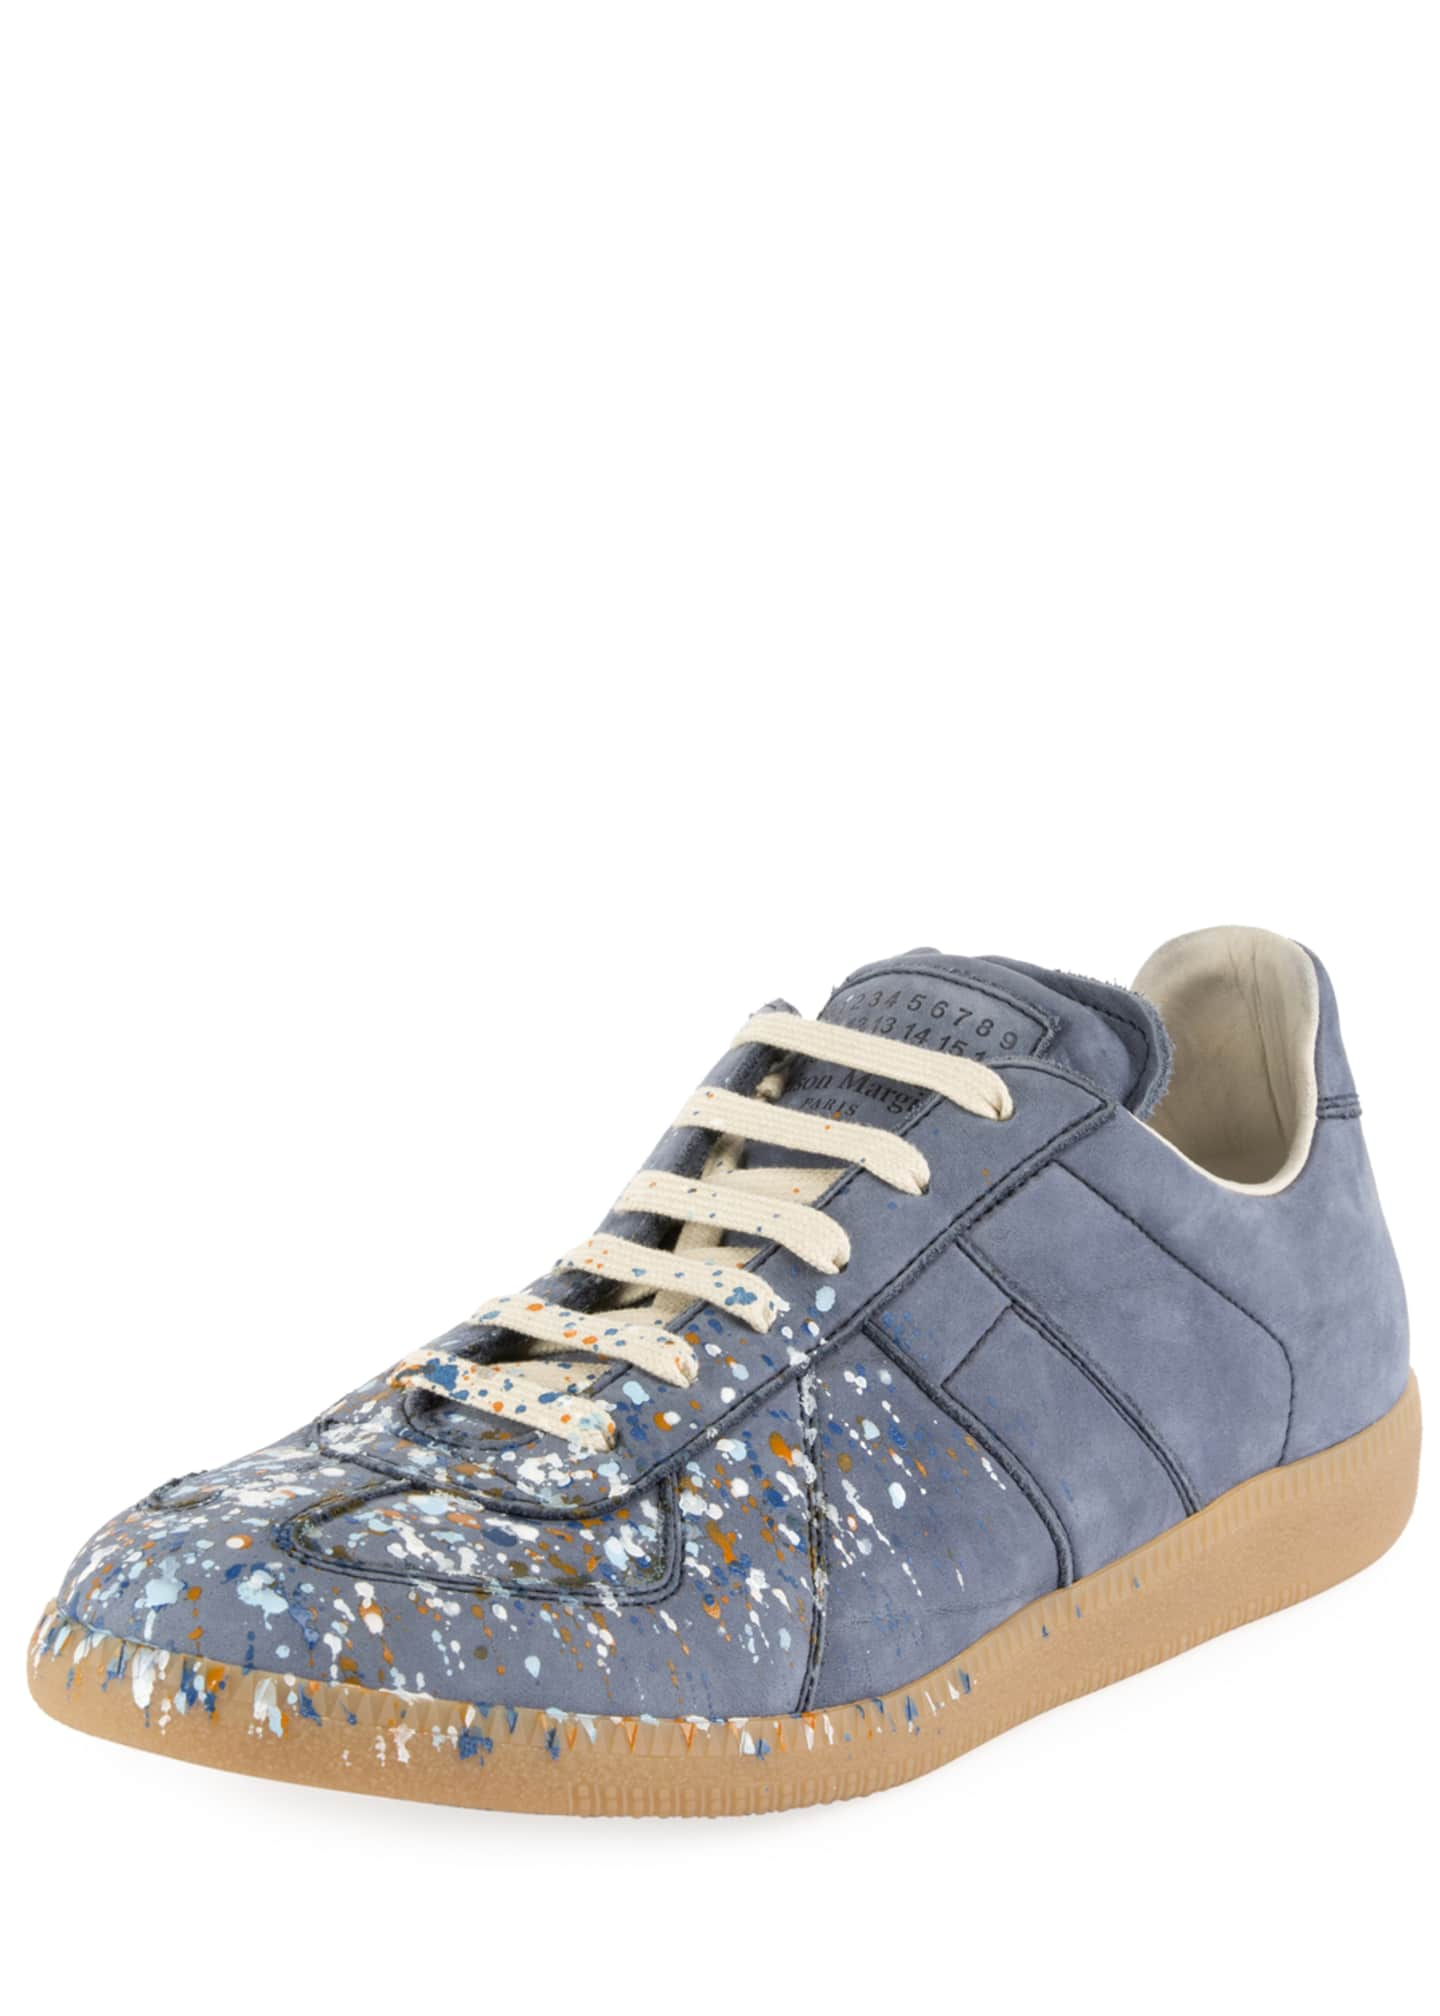 Maison Margiela Men's Replica Paint-Splatter Suede Low-Top